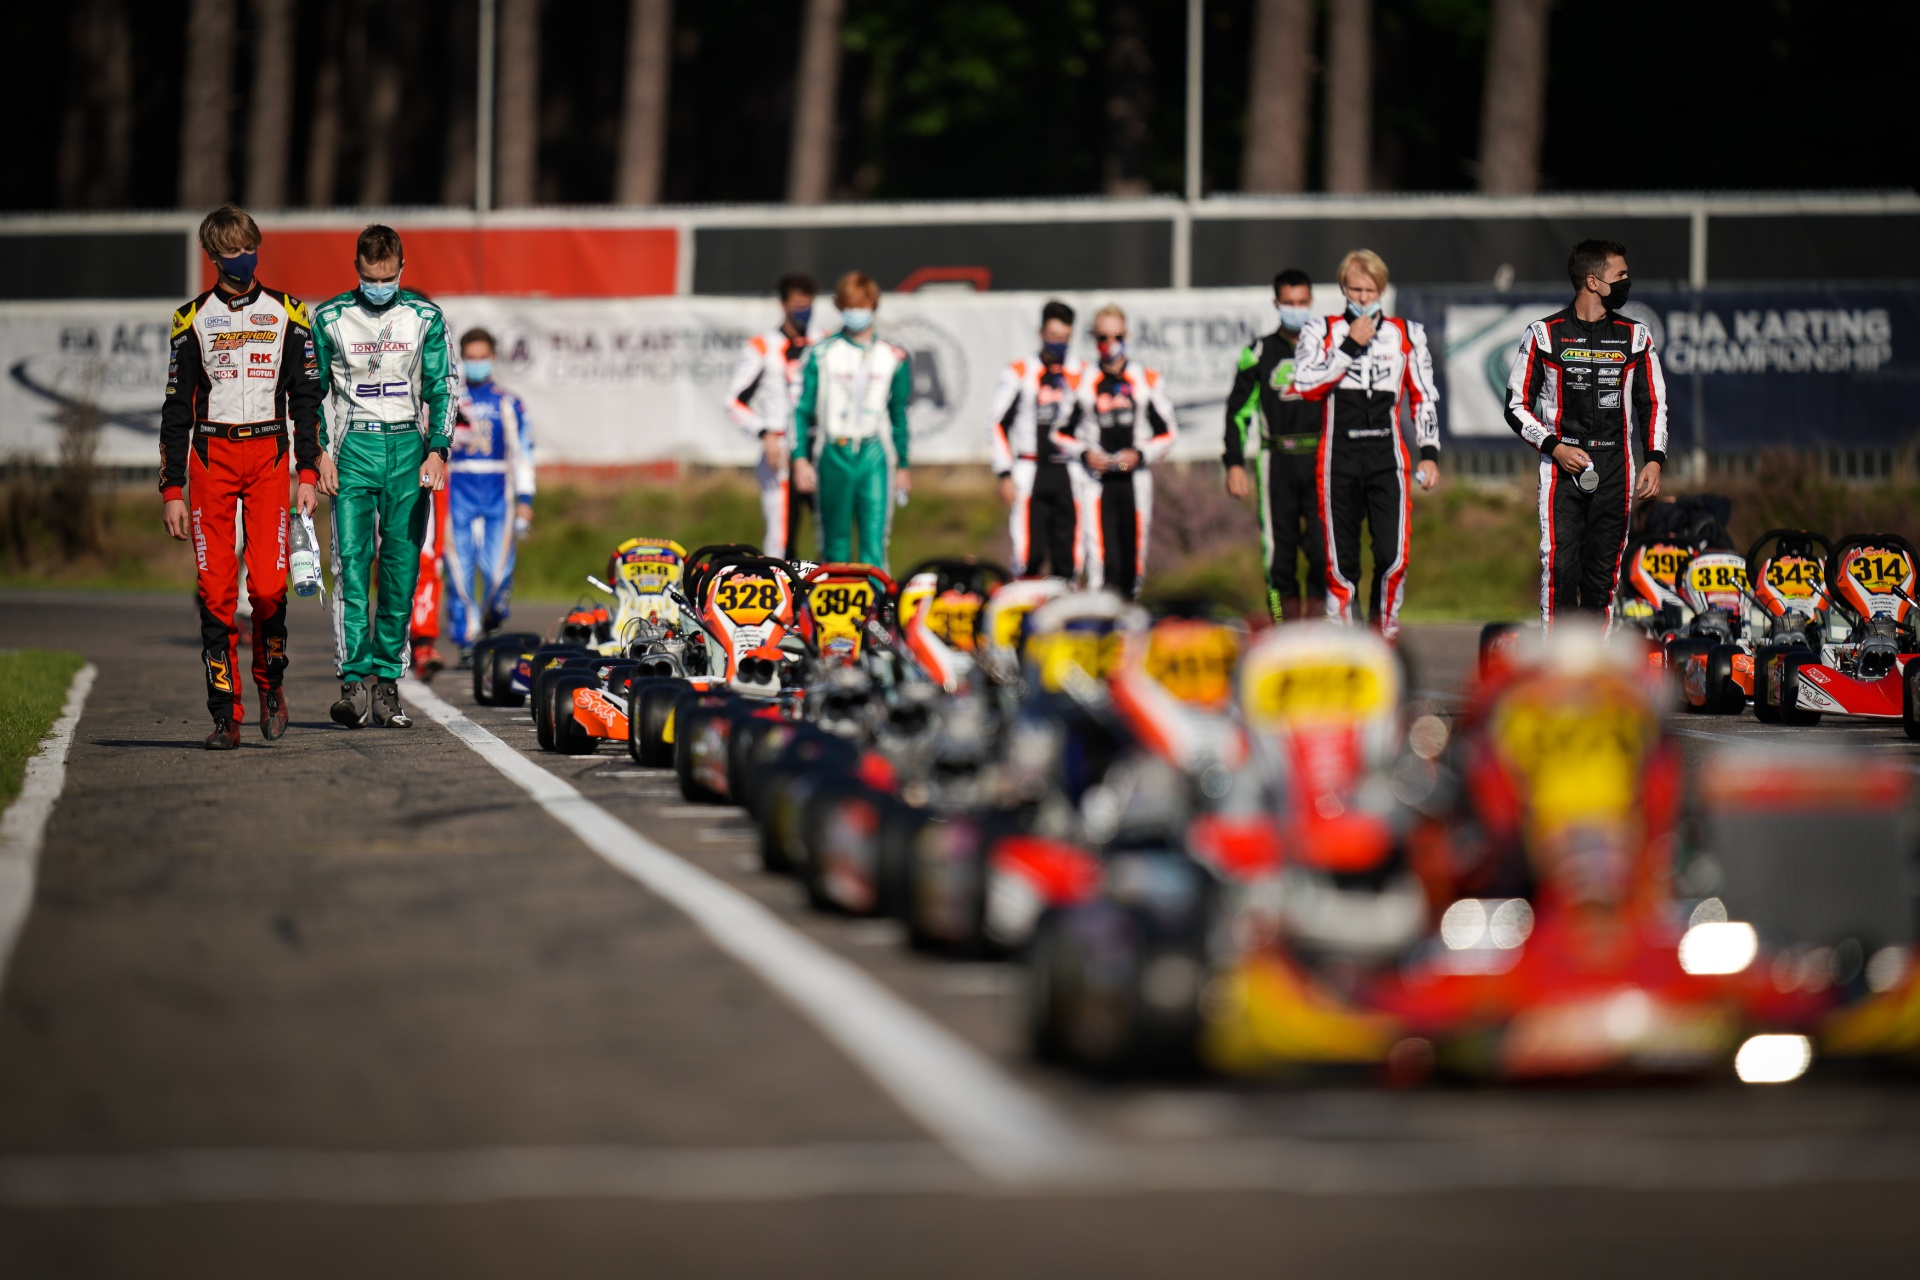 FIA Karting, World Championship - Who will be the new World Champion?